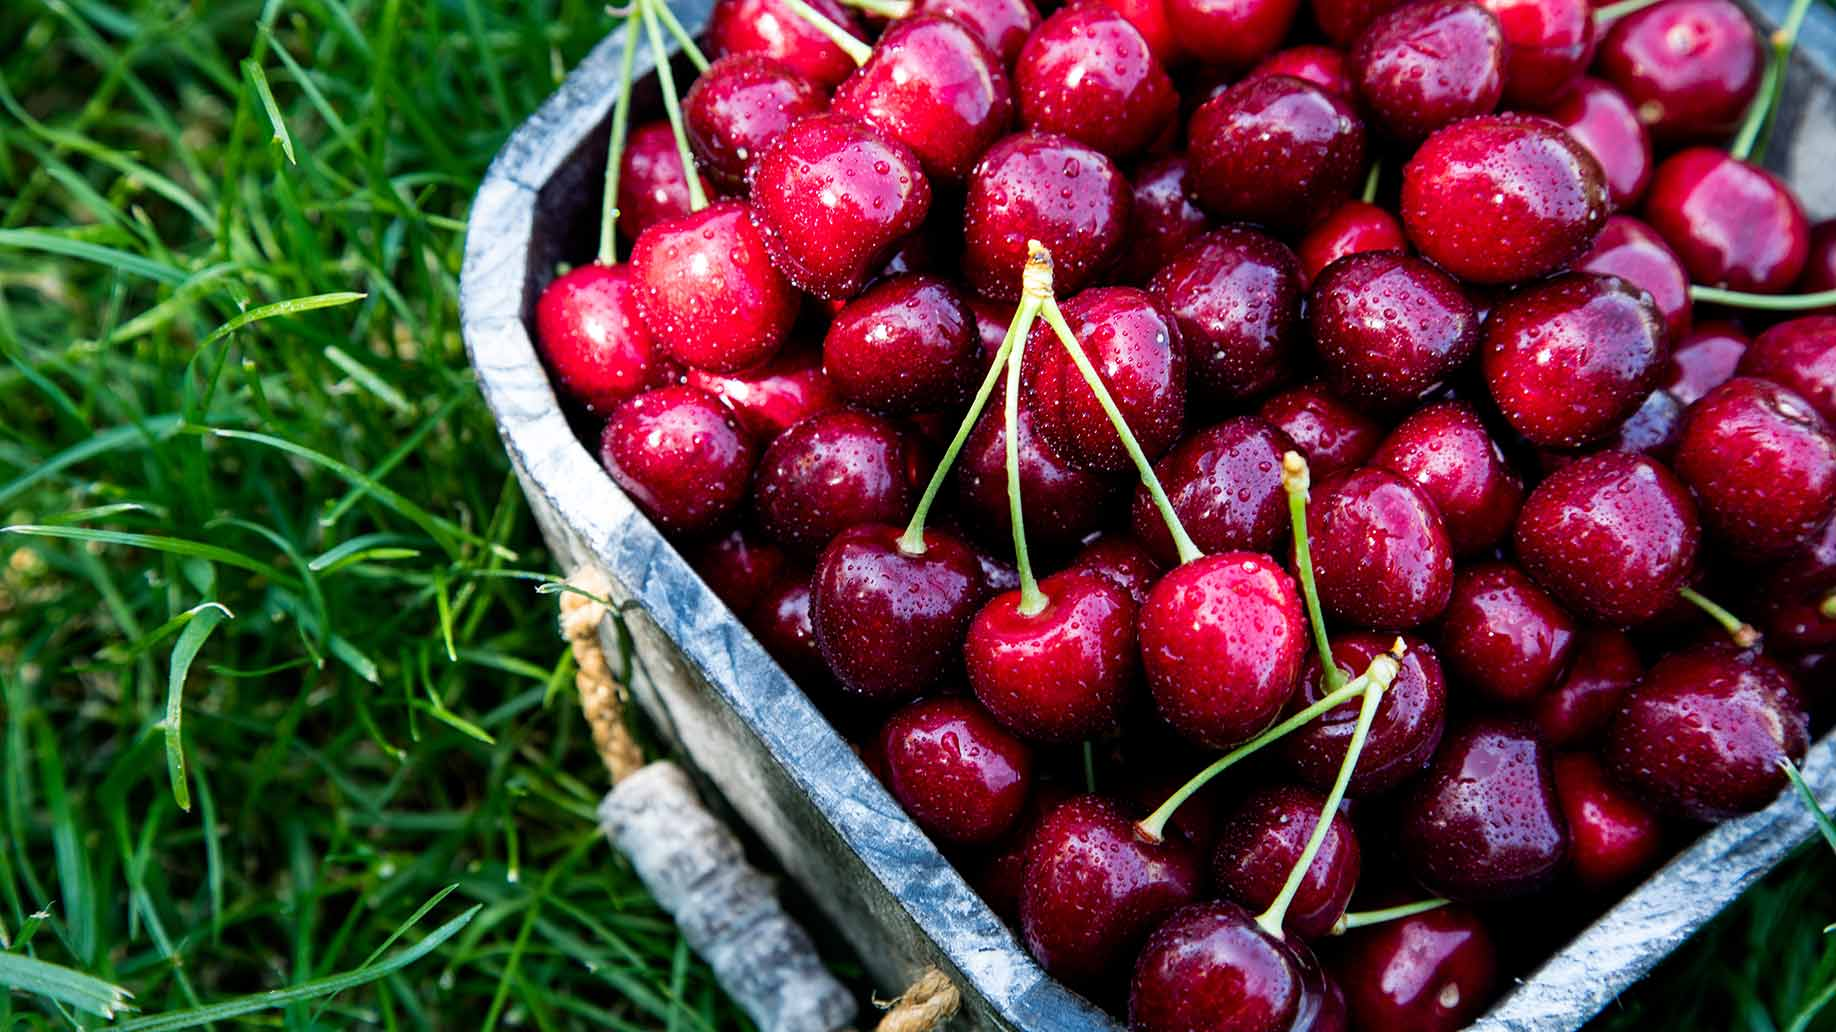 cherries cherry juice melatonin insomnia sleep disorder natural remedy aid